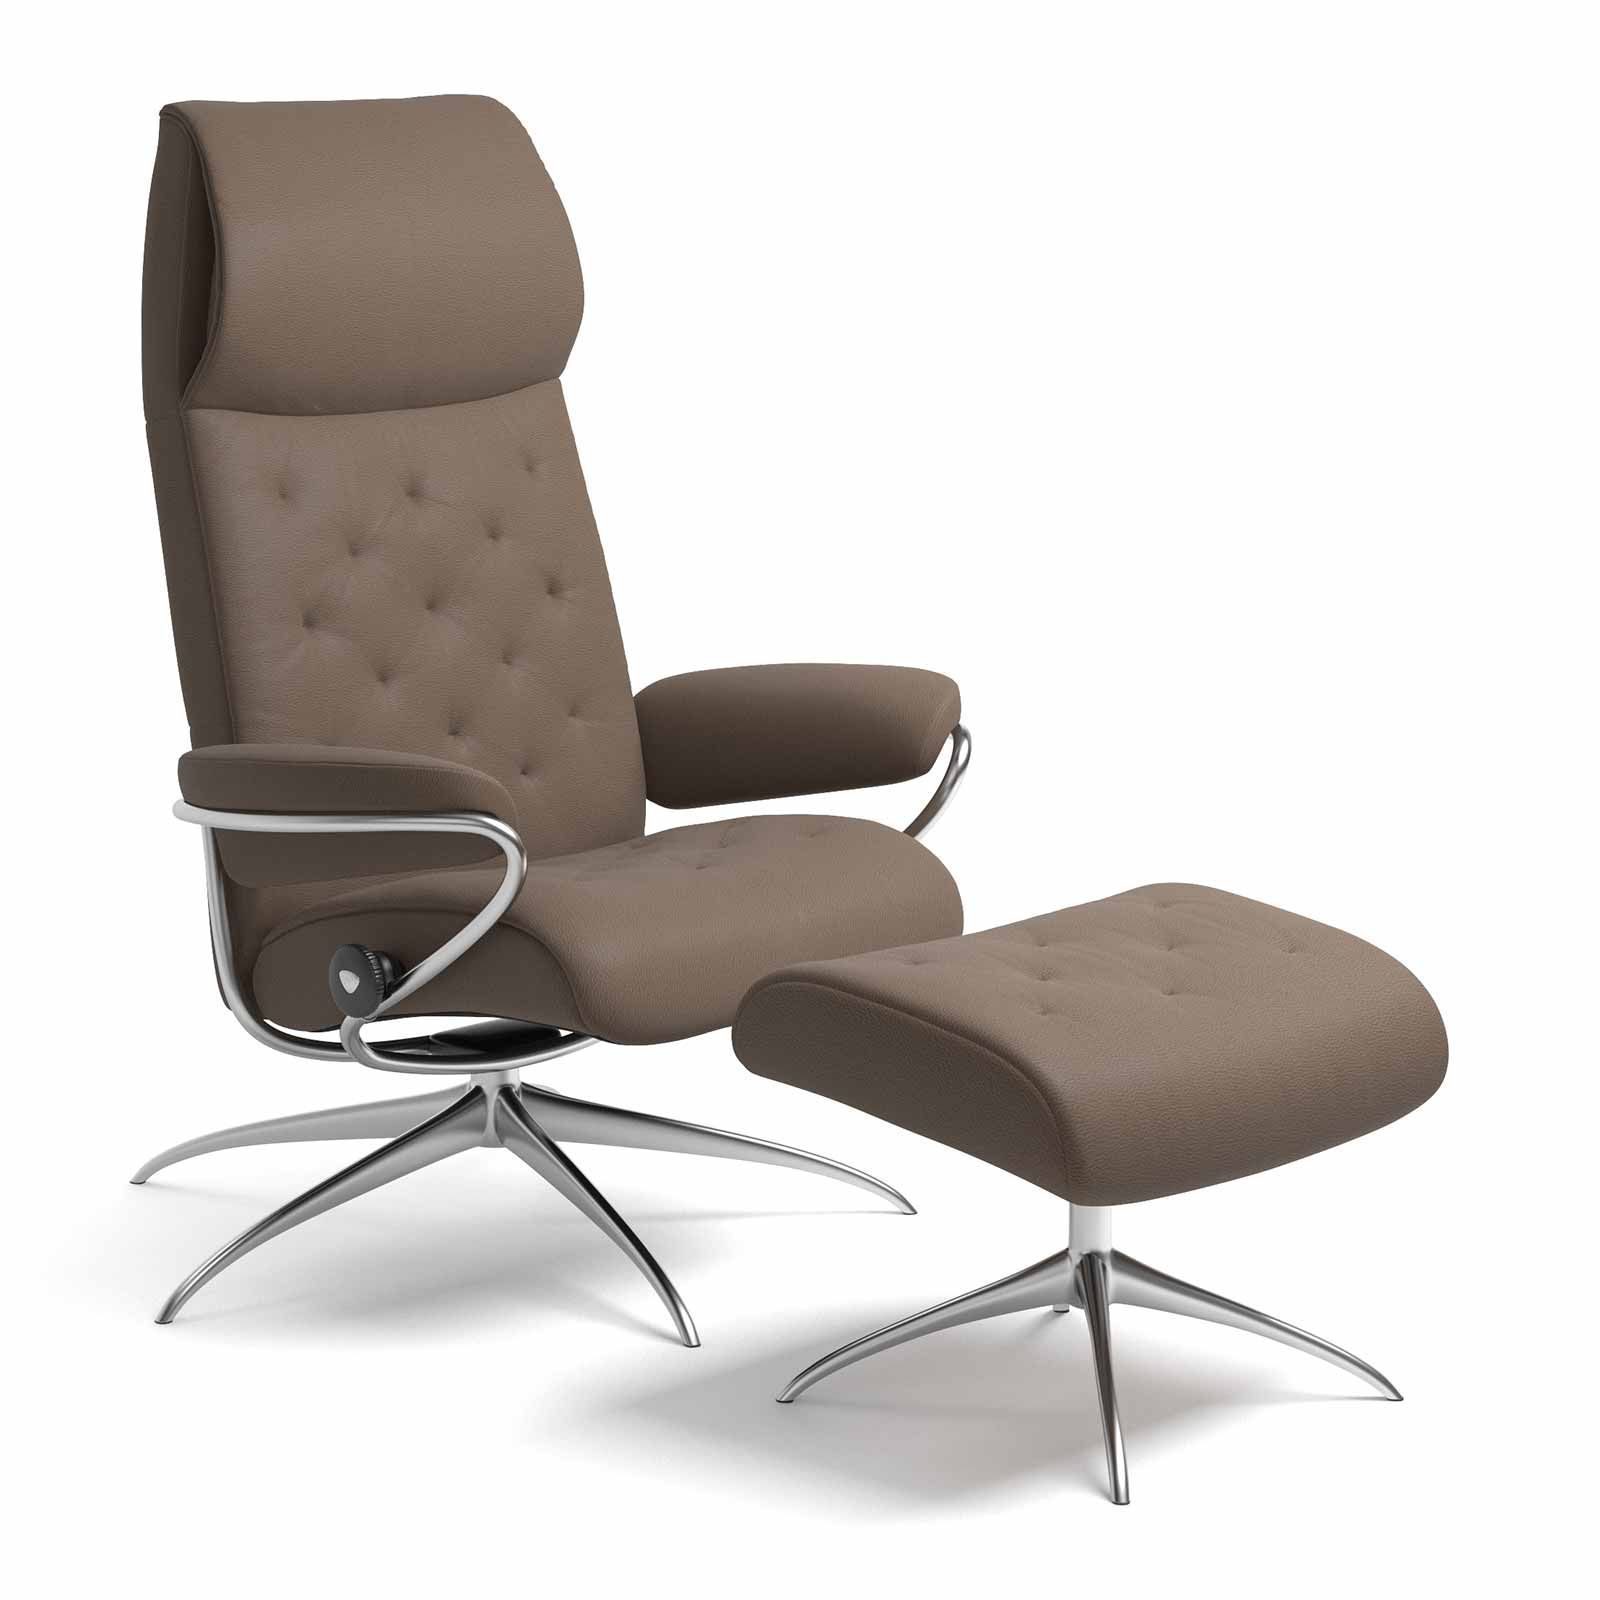 Stressless Sessel City High Back Stressless Metro High Back Batick Mole Mit Hocker Stressless